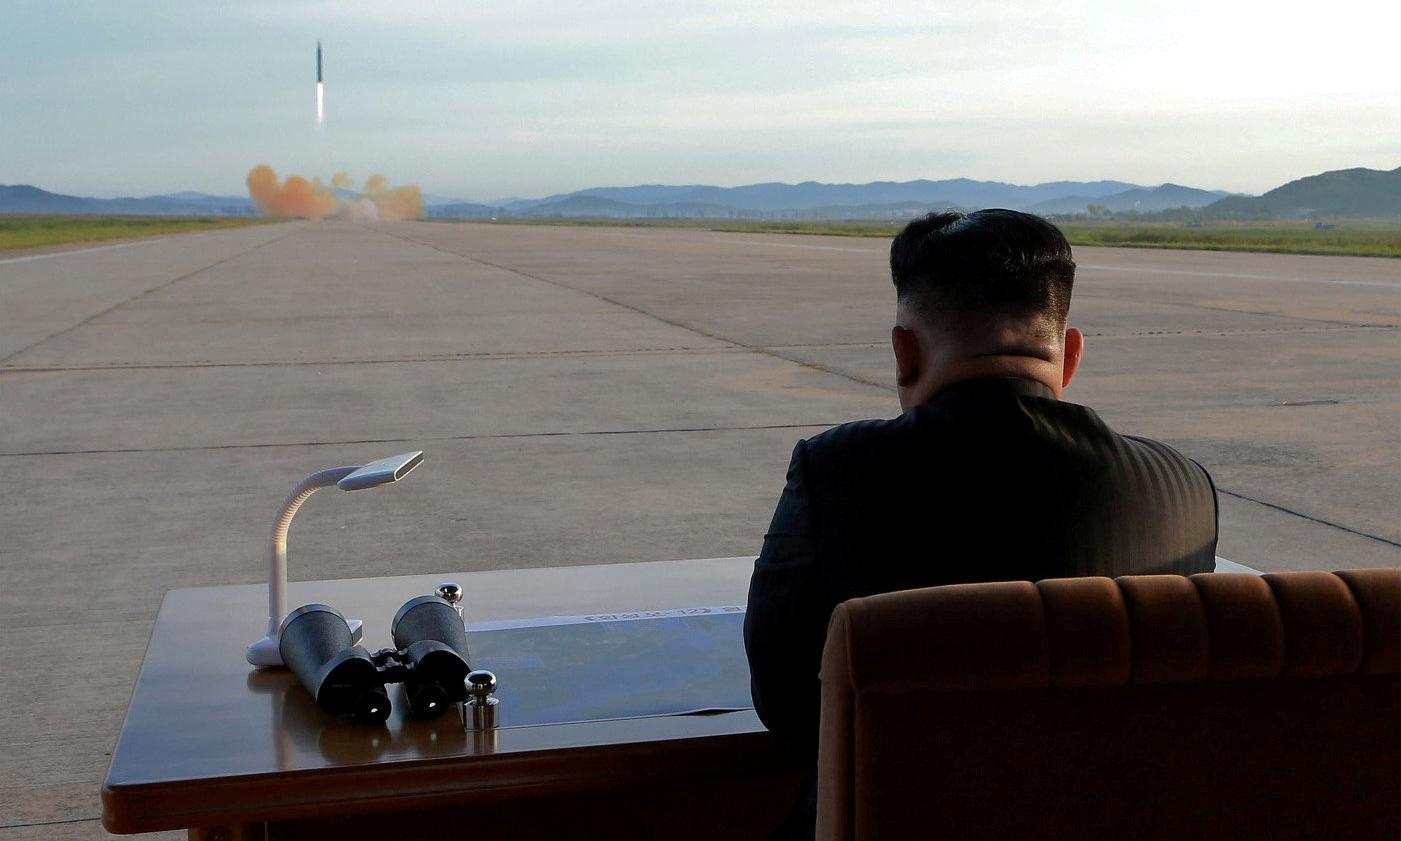 North Korea: secret missile HQ uncovered as nuclear summit nears